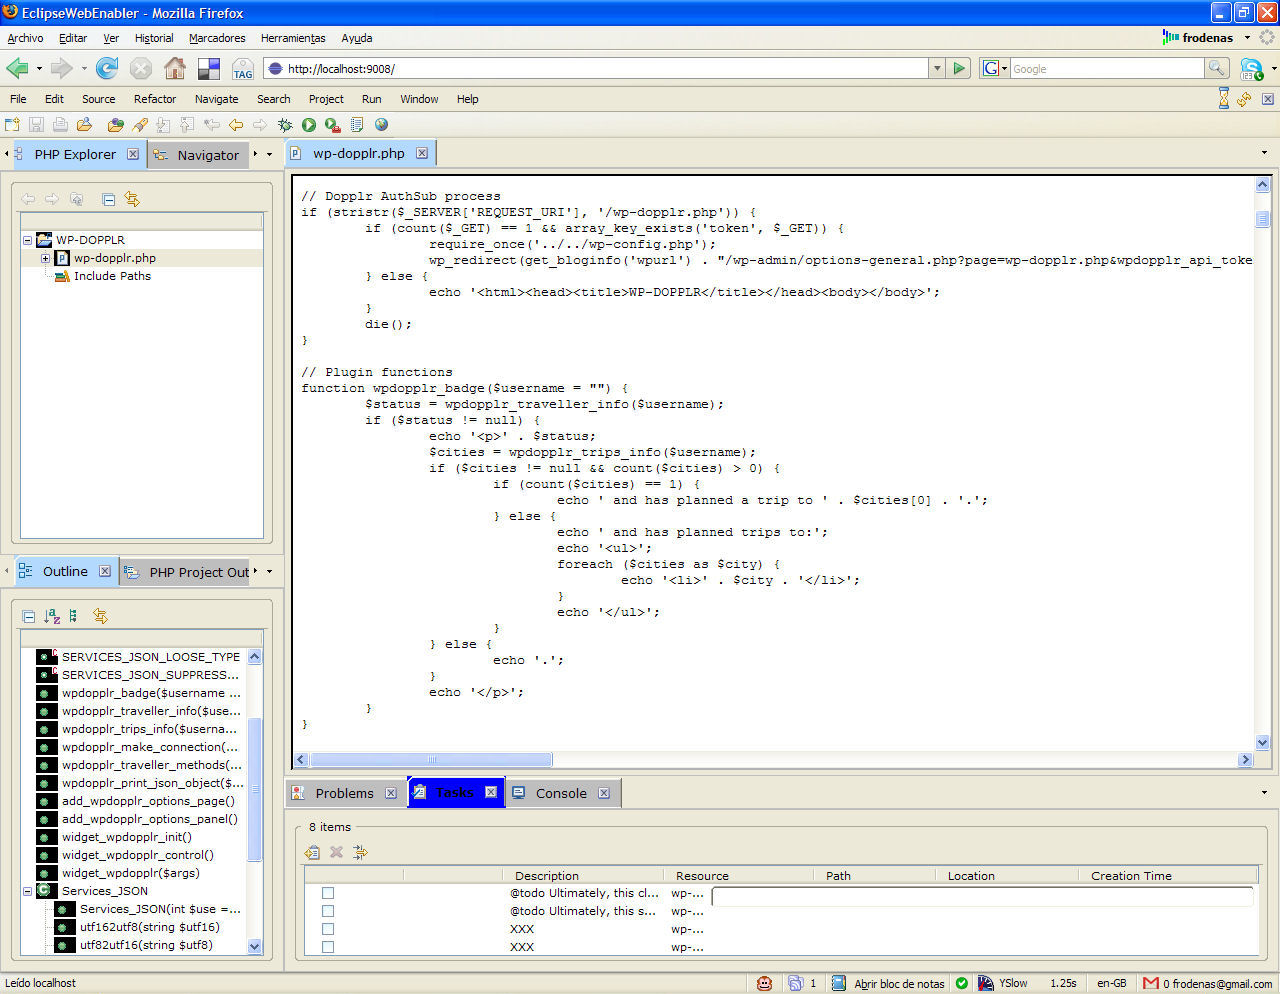 Eclifox - Web Browser-Based Interaction with the Eclipse IDE